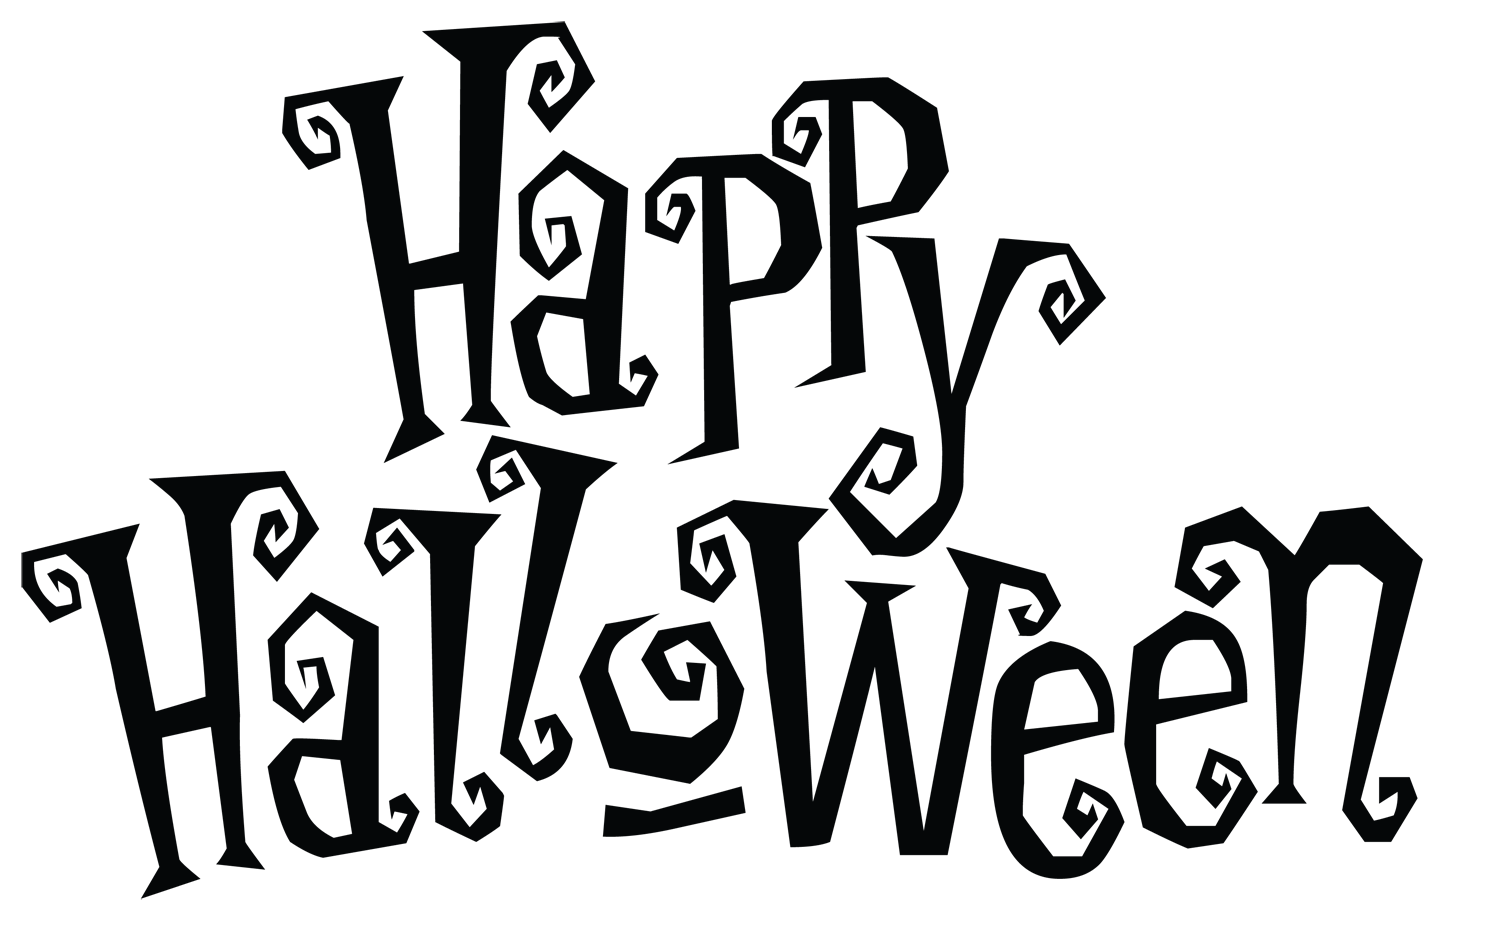 Printable Halloween Decorations as well Printable Masks For Kids Print On Cardstock And La together with Halloween Coloring Pages also Halloween Word Art also 382383824594066768. on scary costumes for s